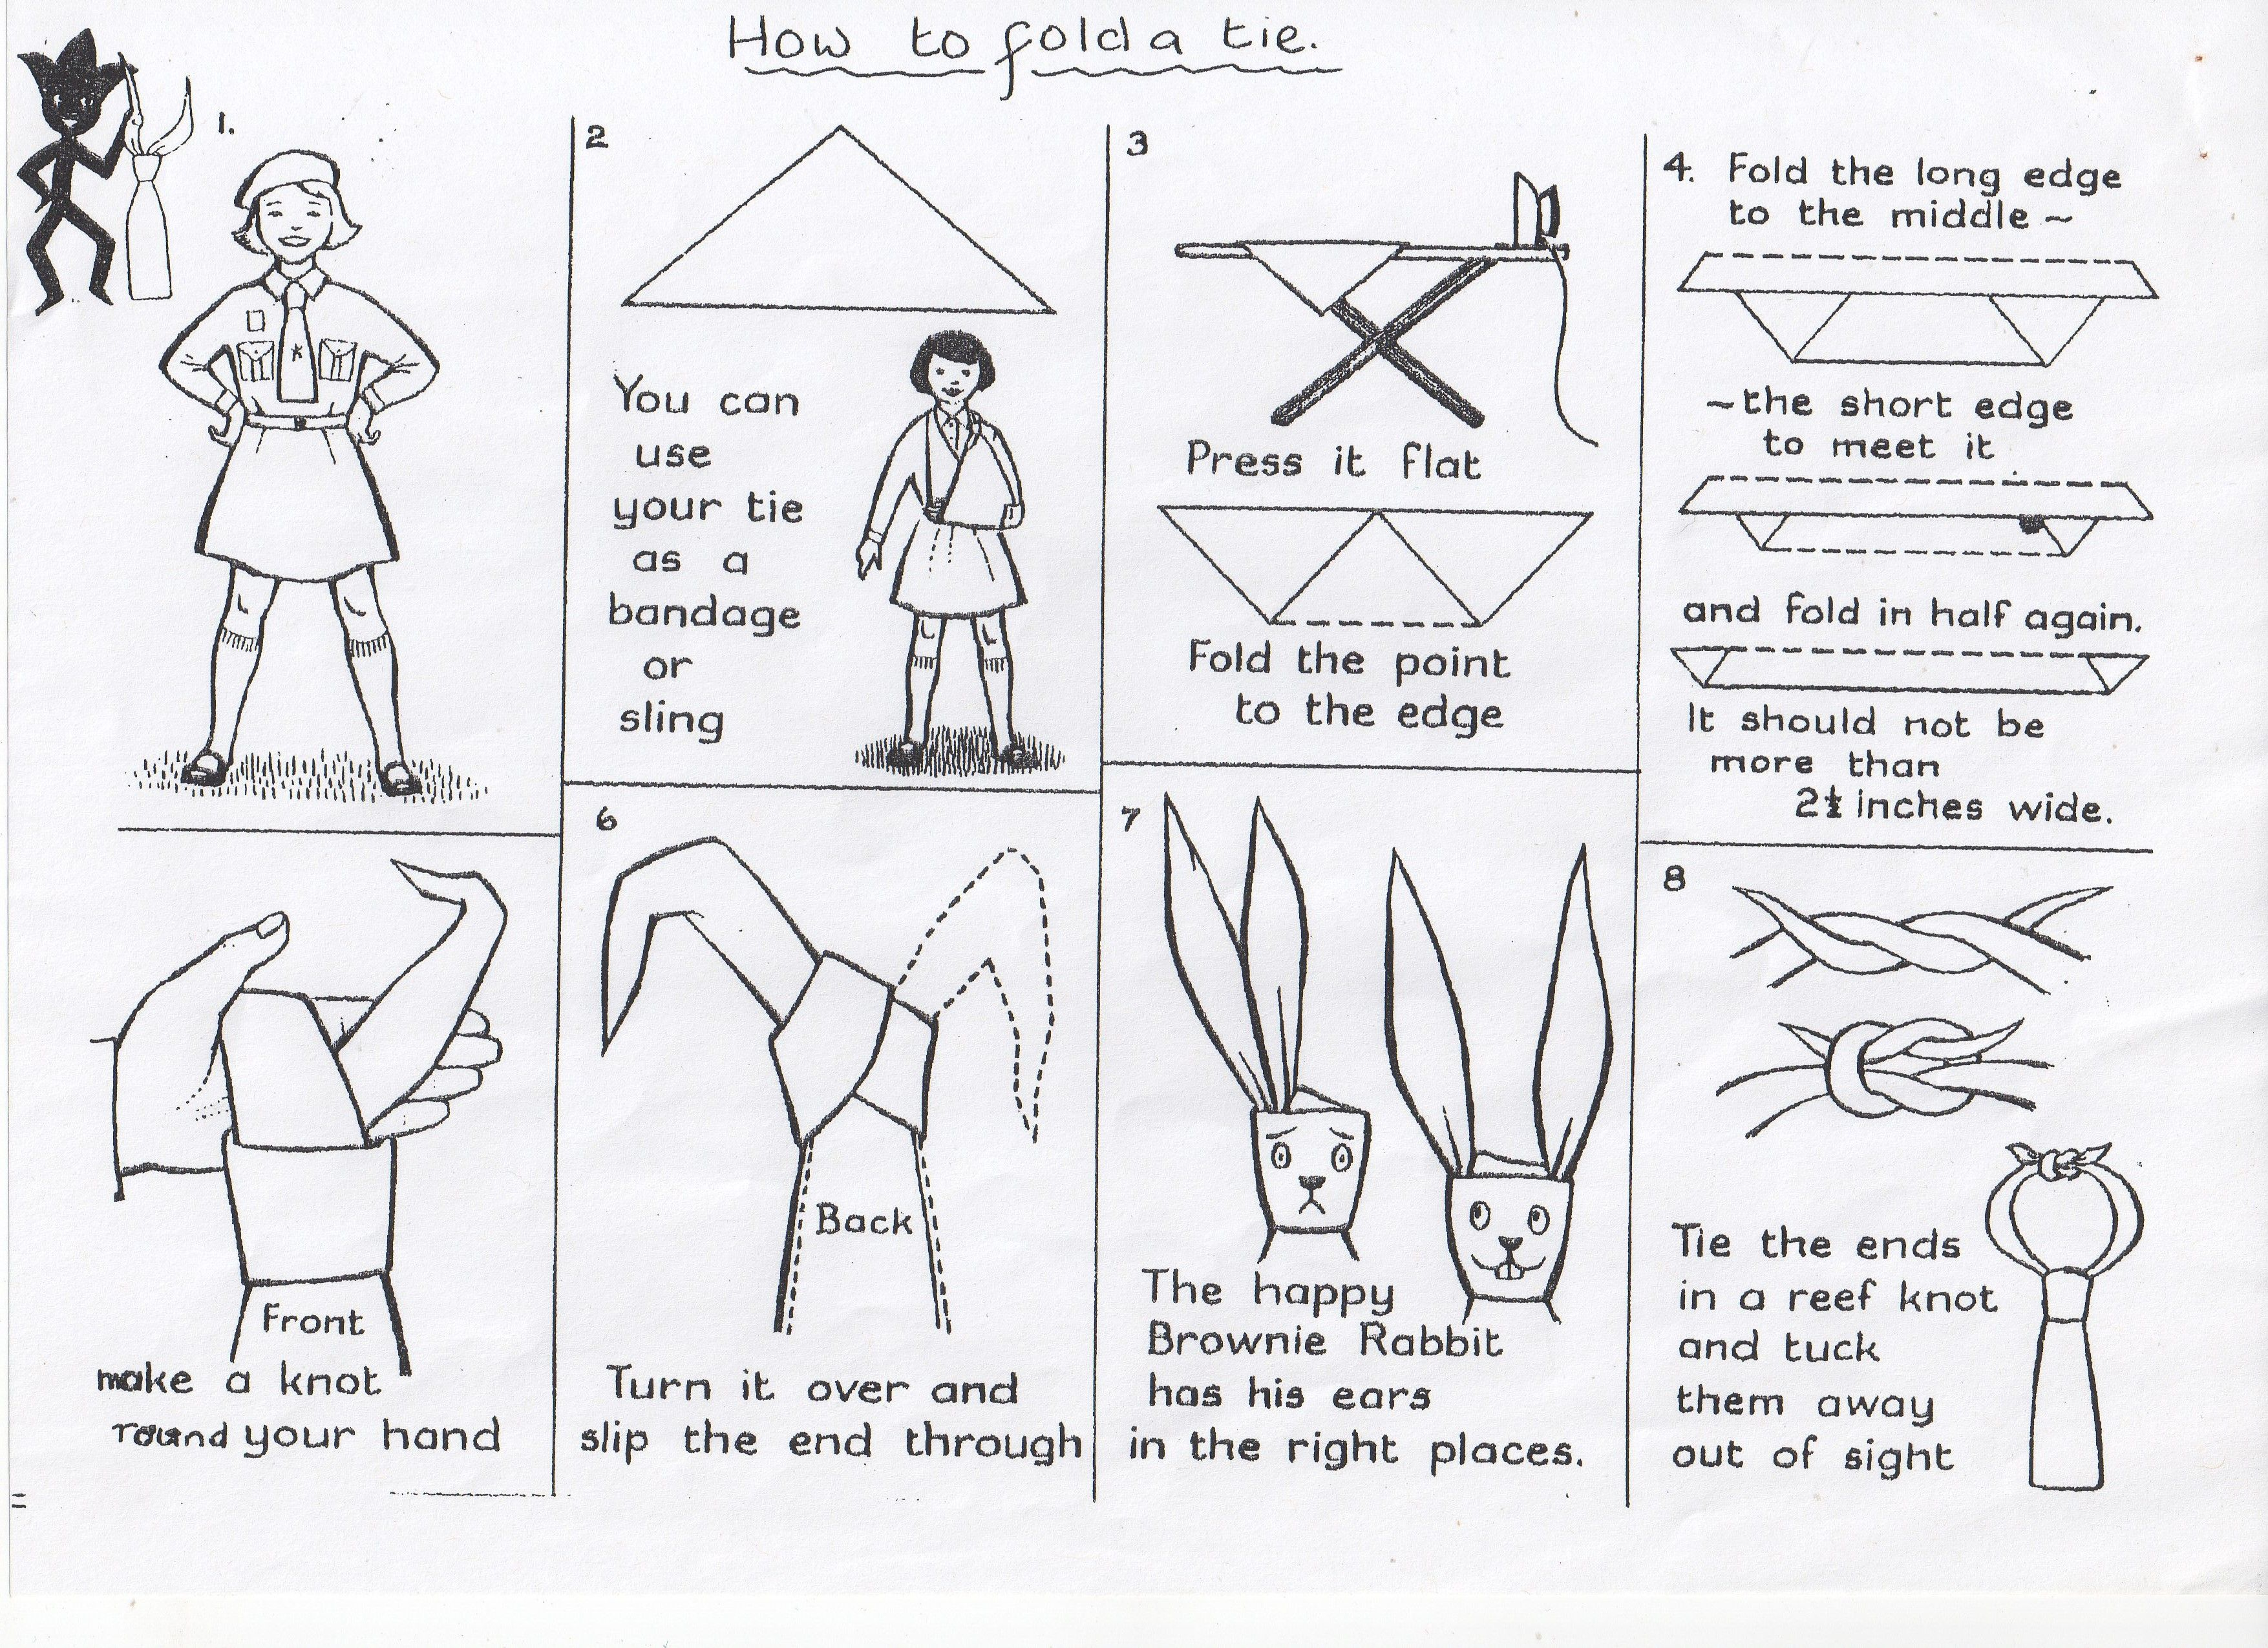 How to tie your tie! A chart from the 1950's or 1960's